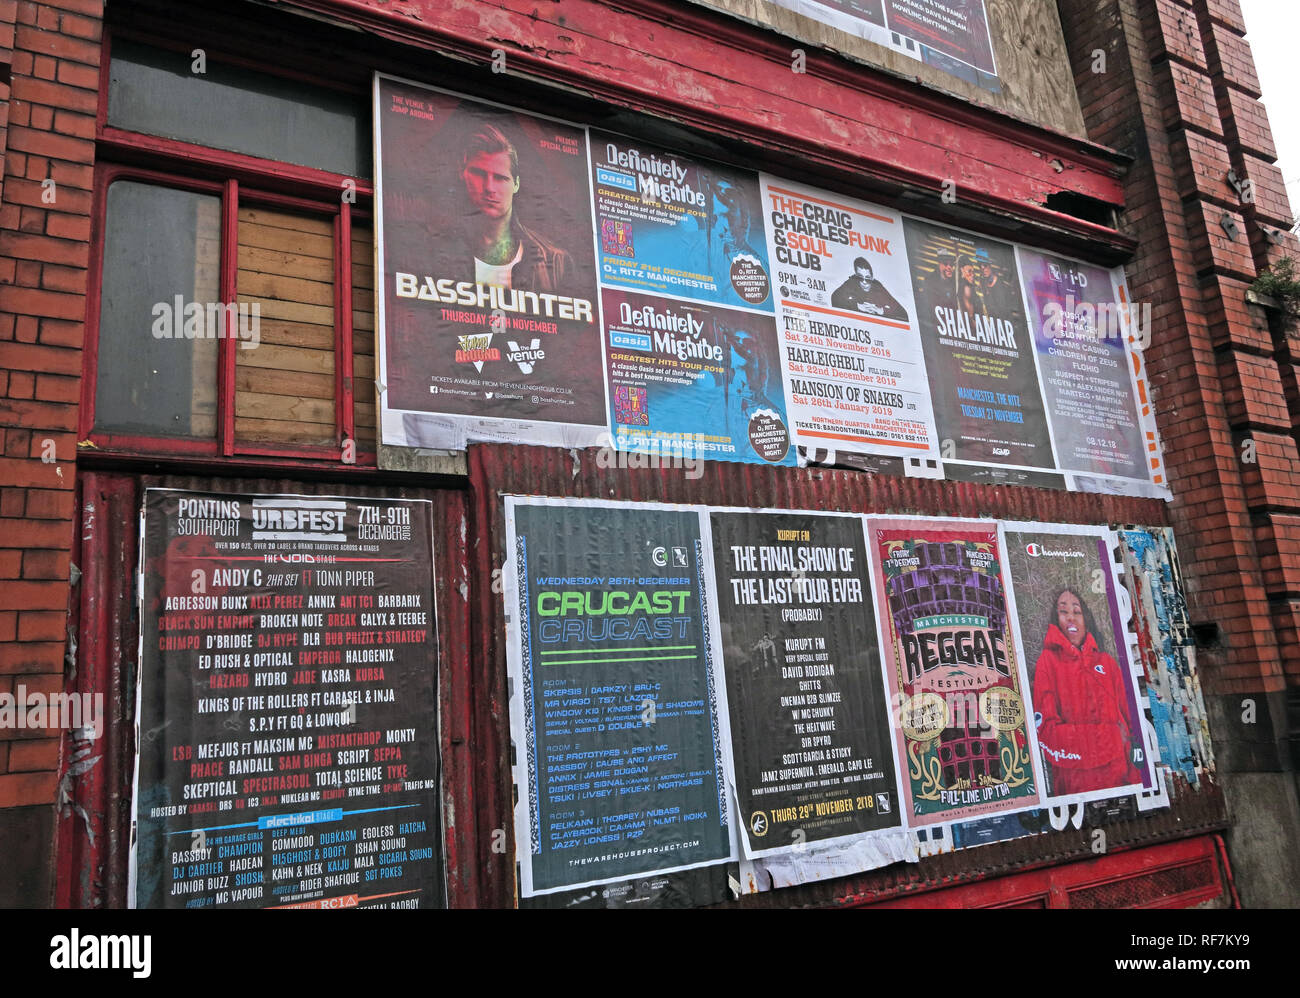 Manchester City Centre,Manchester,City Centre,city,NQ,NQ4,Northern Quarter,North West,England,UK,GoTonySmith,HotpixUK,@HotpixUK,buildings,streets,Railway,sign,Fairfield St,Mayfield,history,brick,station,scheme,proposed,development,schemes,poster,posters,property,London,and,Continental,Railways,London,&,Continental,Railways,LNWR,London Midland,Goods Station,disused,Square One development,Square One,Prime,Suspect,drug,dealers,haunt